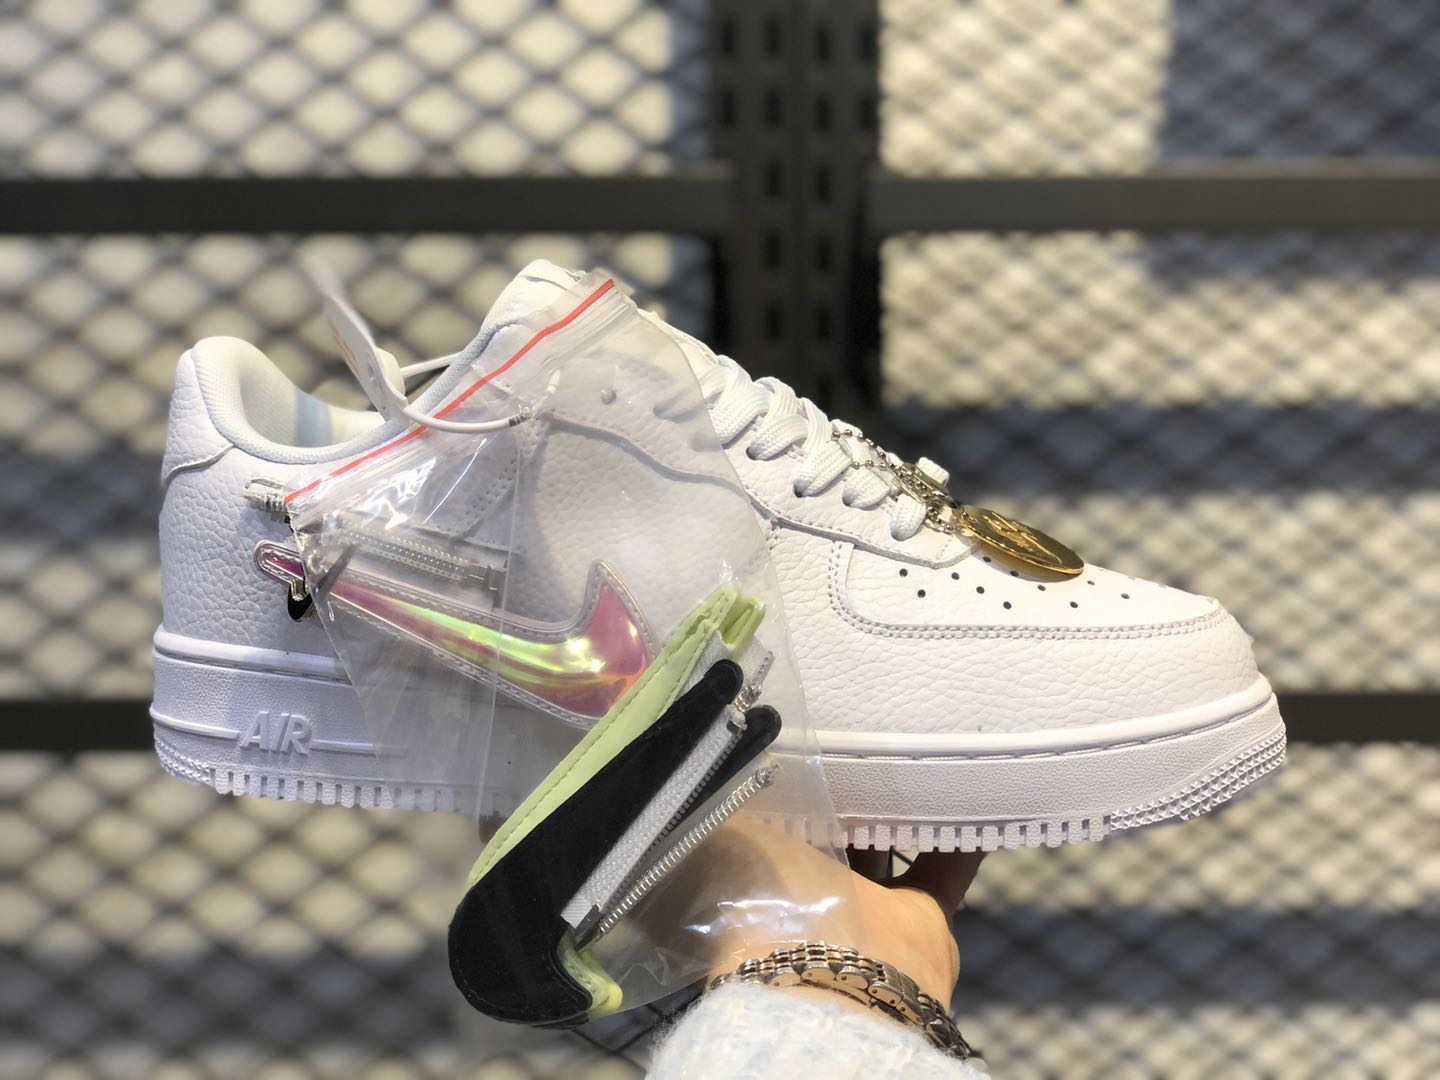 Nike Air Force 1 With Zip-On Swooshes White/Purple-Black CW6558-100